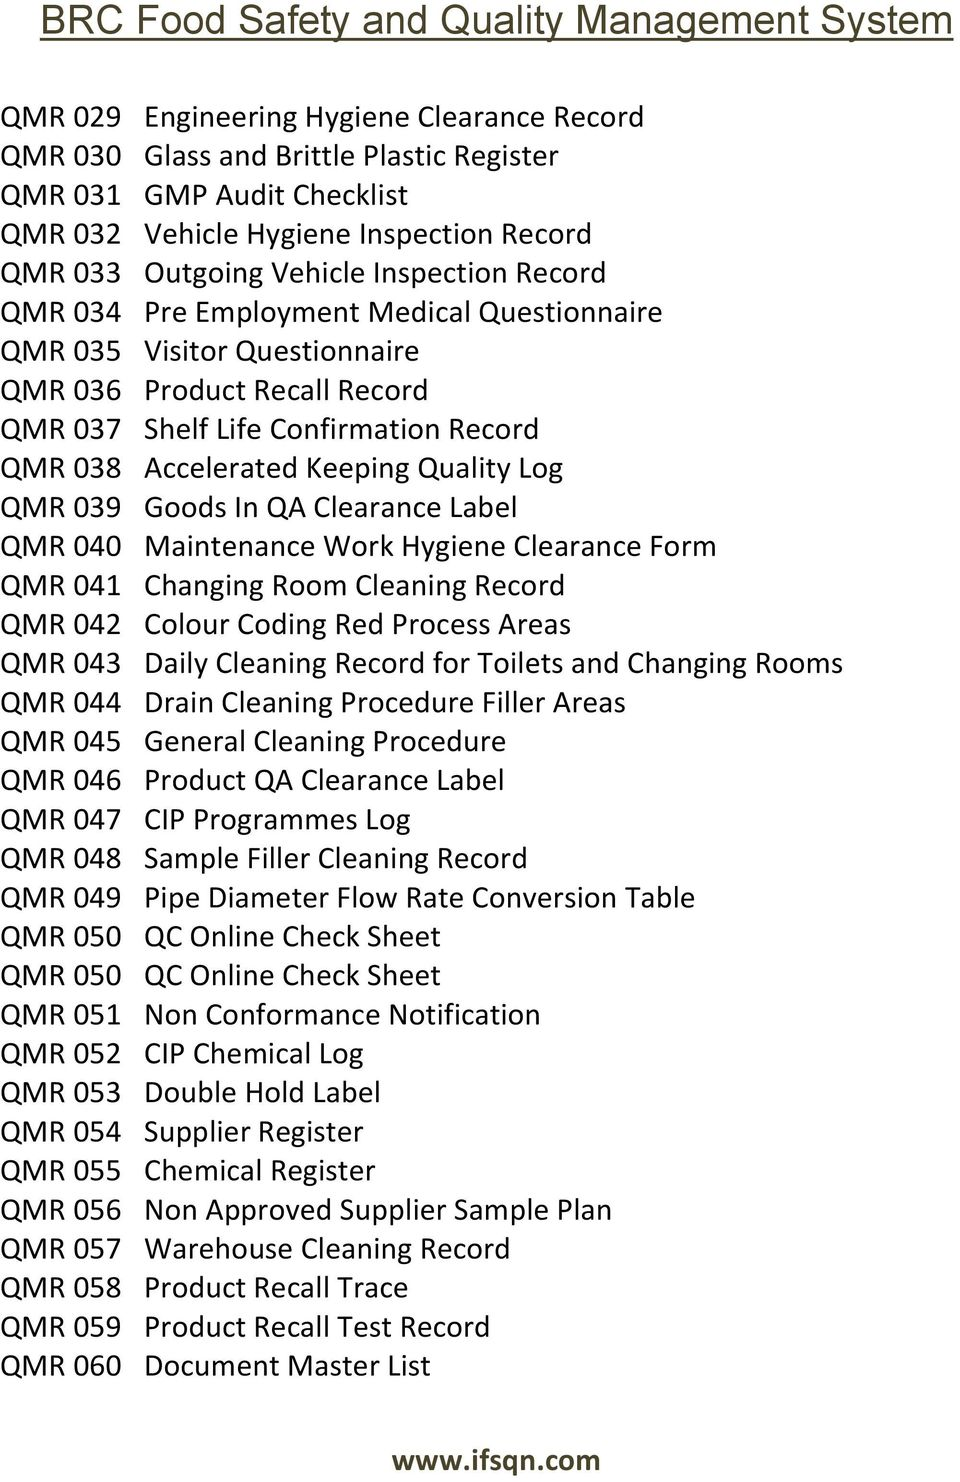 Goods In QA Clearance Label QMR 040 Maintenance Work Hygiene Clearance Form QMR 041 Changing Room Cleaning Record QMR 042 Colour Coding Red Process Areas QMR 043 Daily Cleaning Record for Toilets and